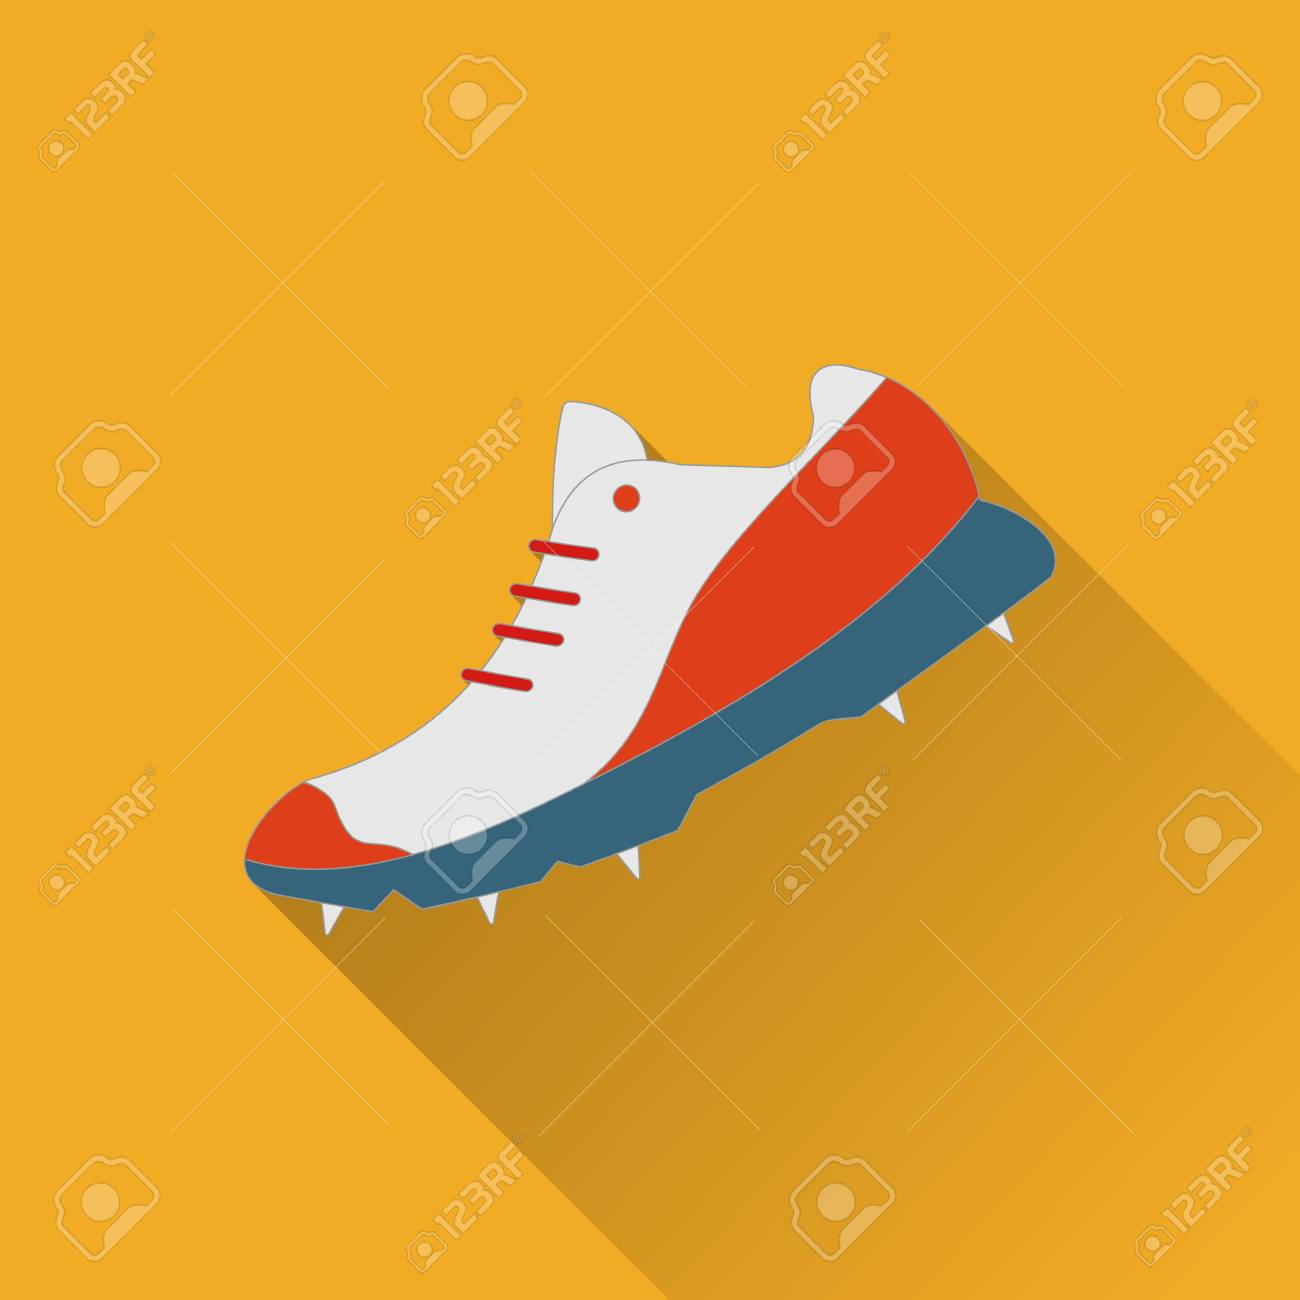 cricket game equipment flat icons composition professional sport